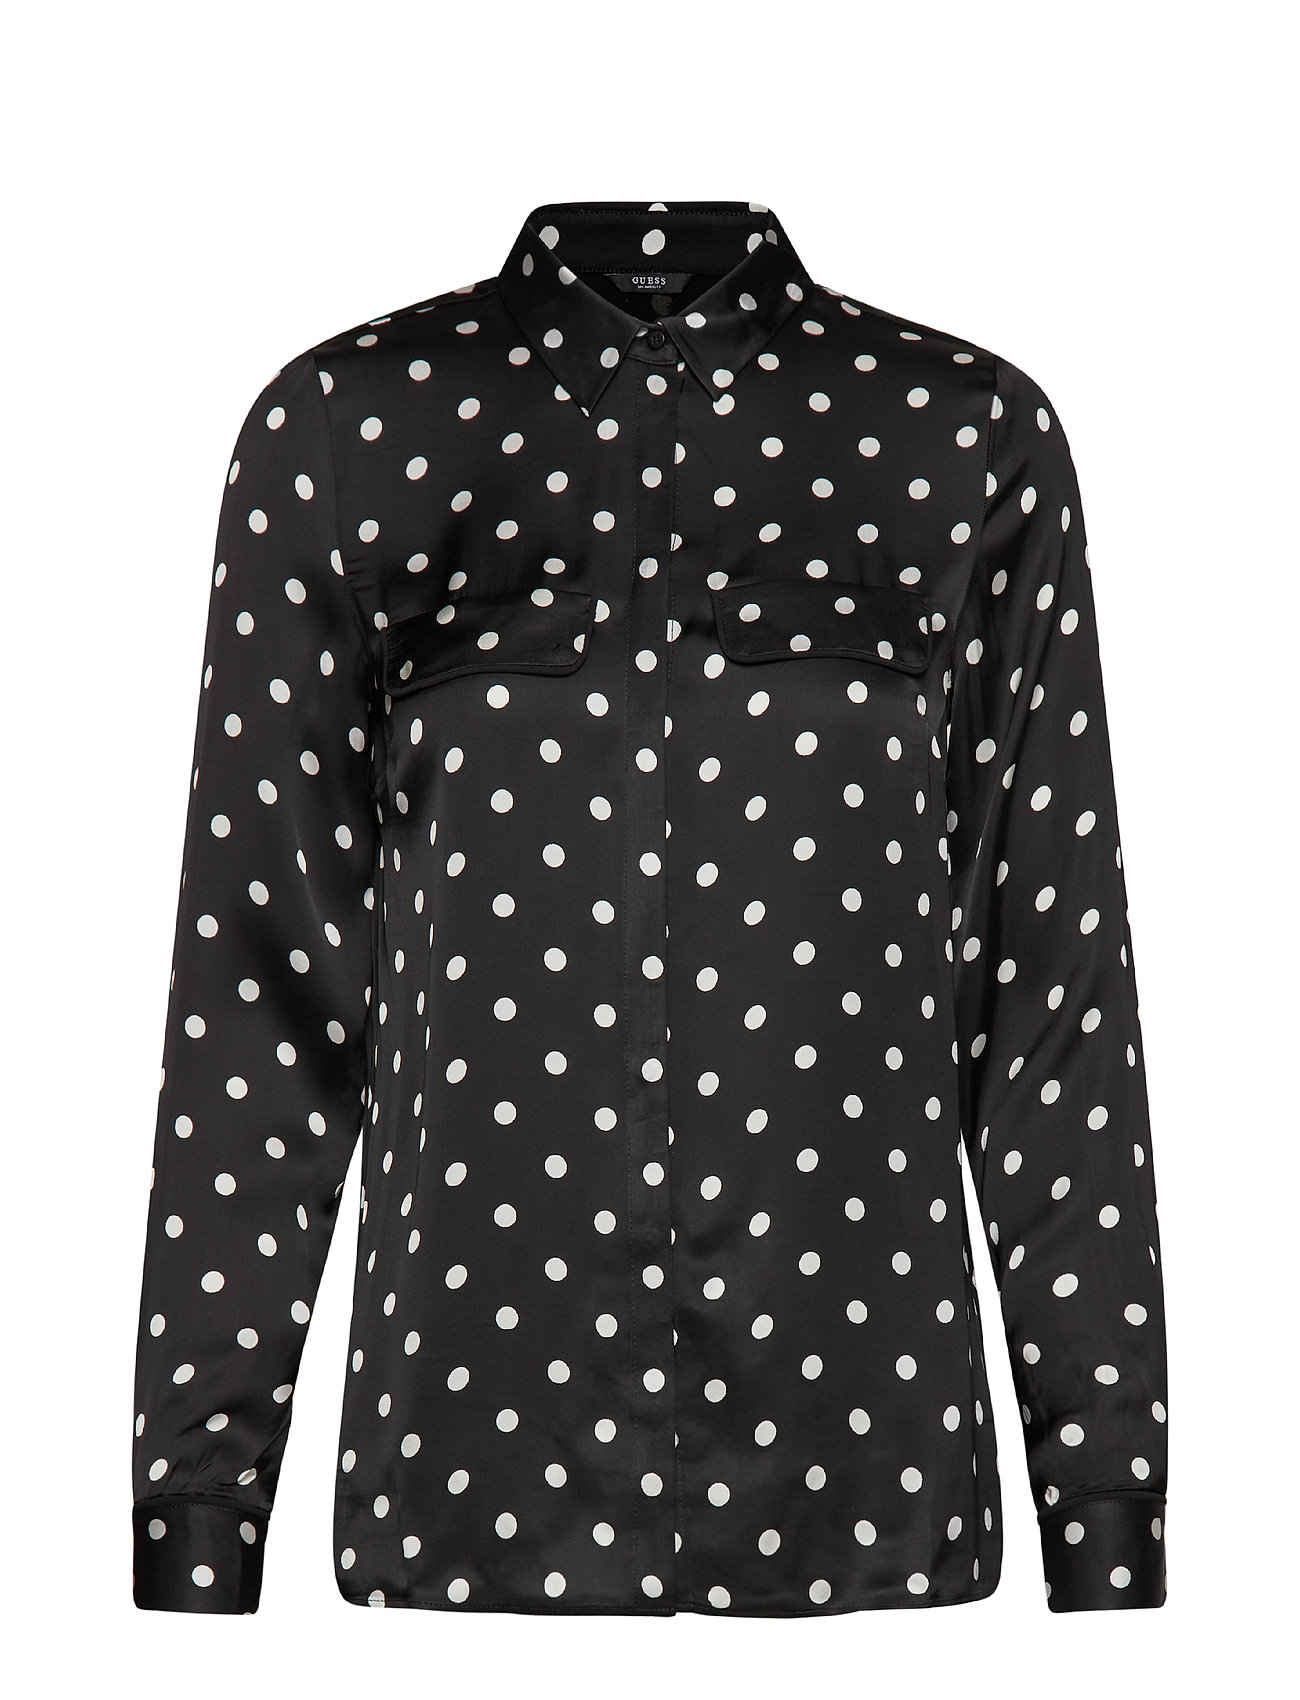 GUESS Jeans LS PETRONILLA SHIRT - B&W SMALL POIS